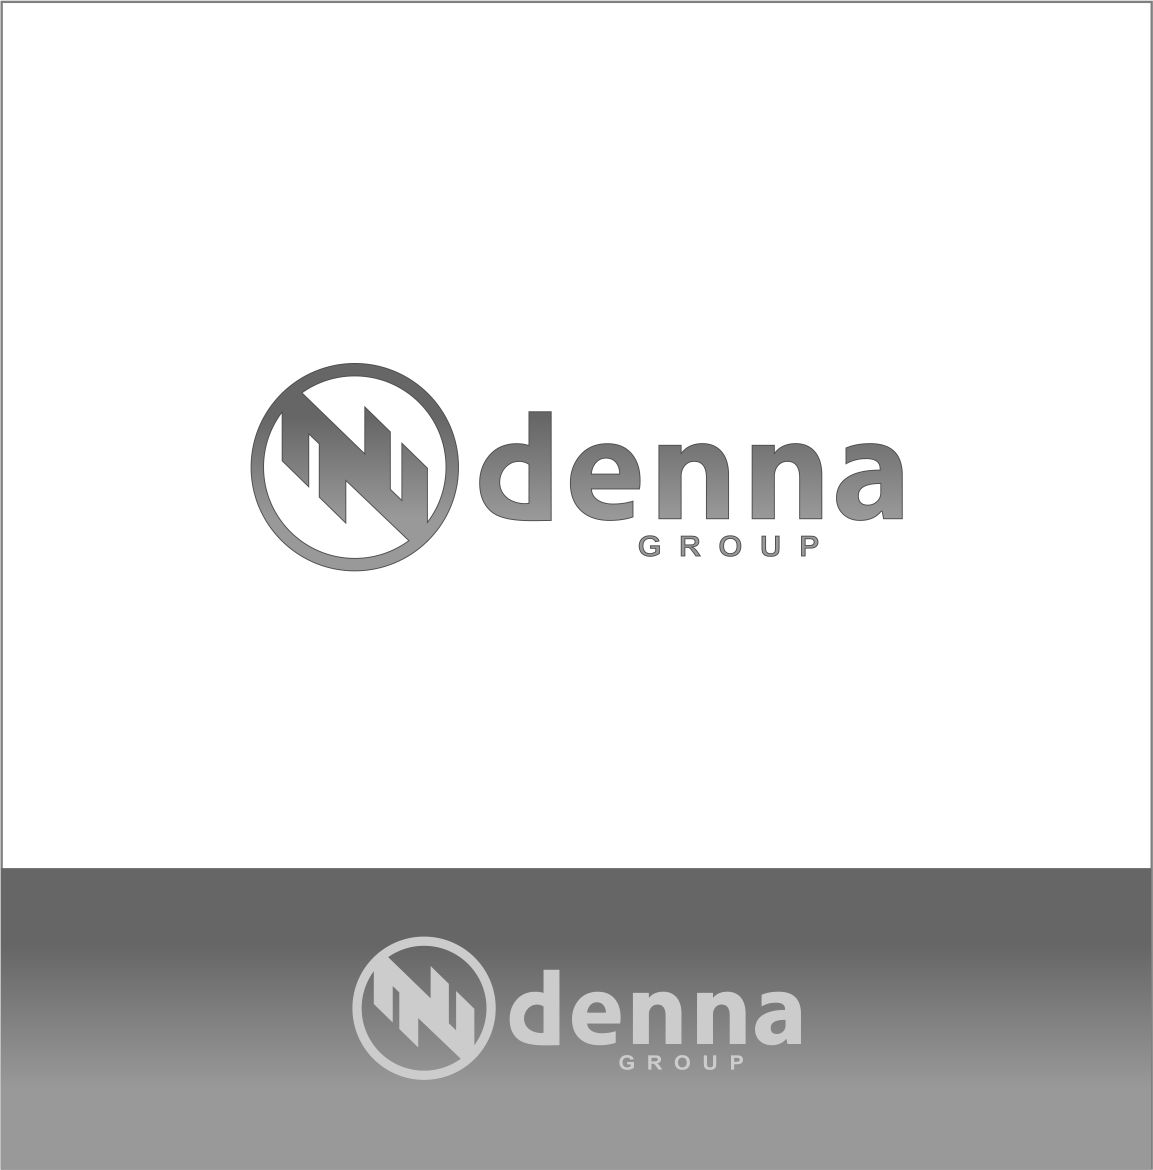 Logo Design by Private User - Entry No. 336 in the Logo Design Contest Denna Group Logo Design.